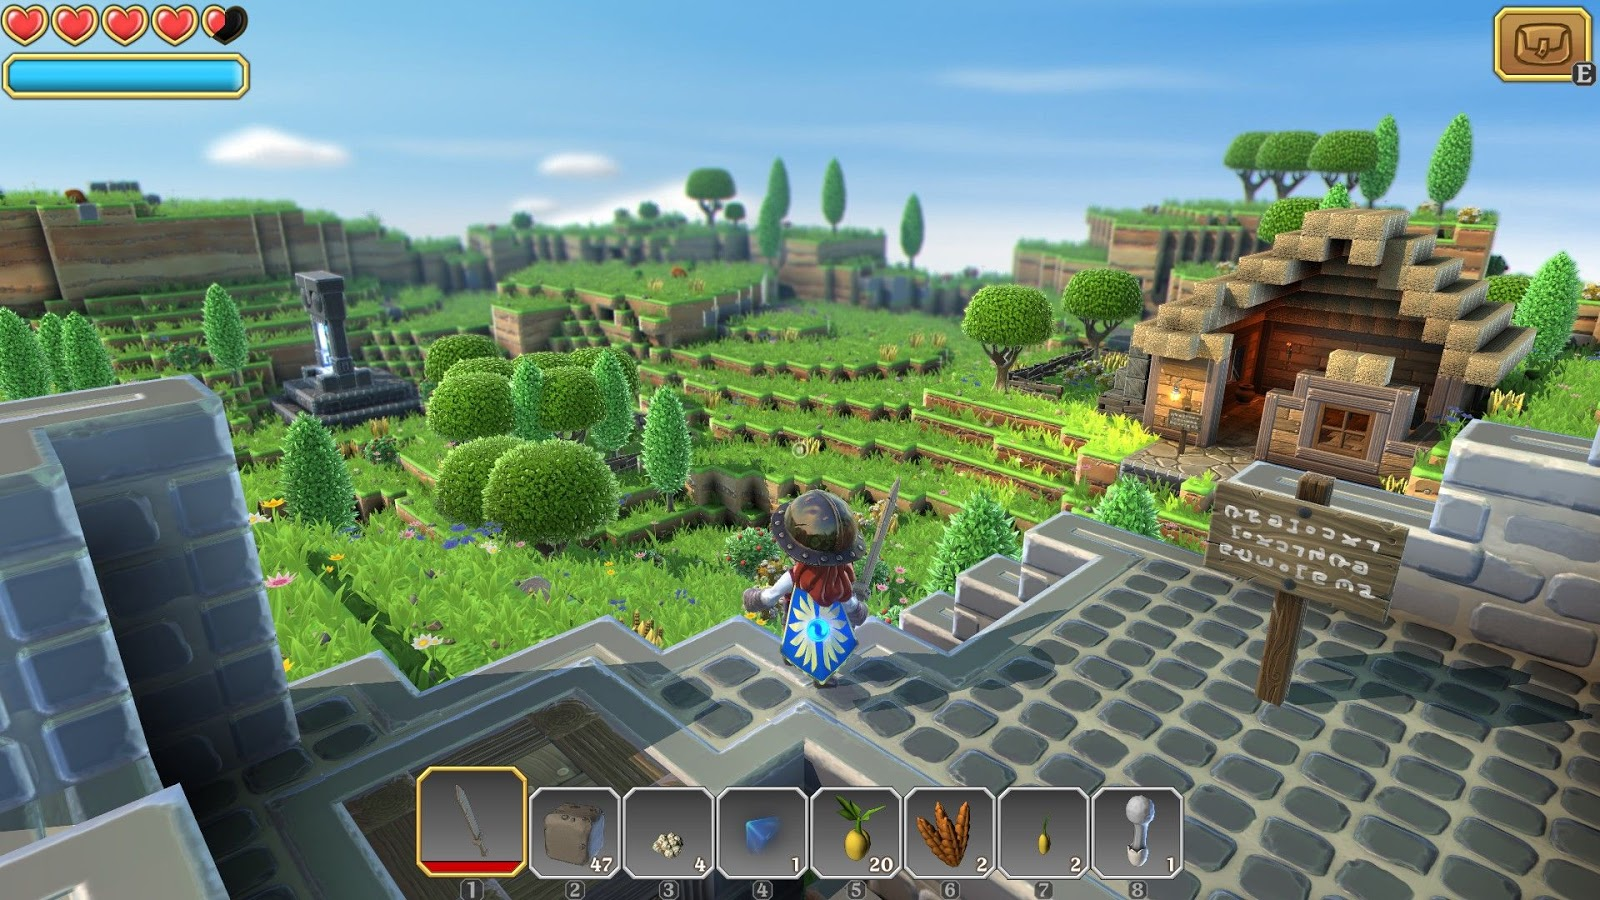 portal knights 1.2.7 android apk